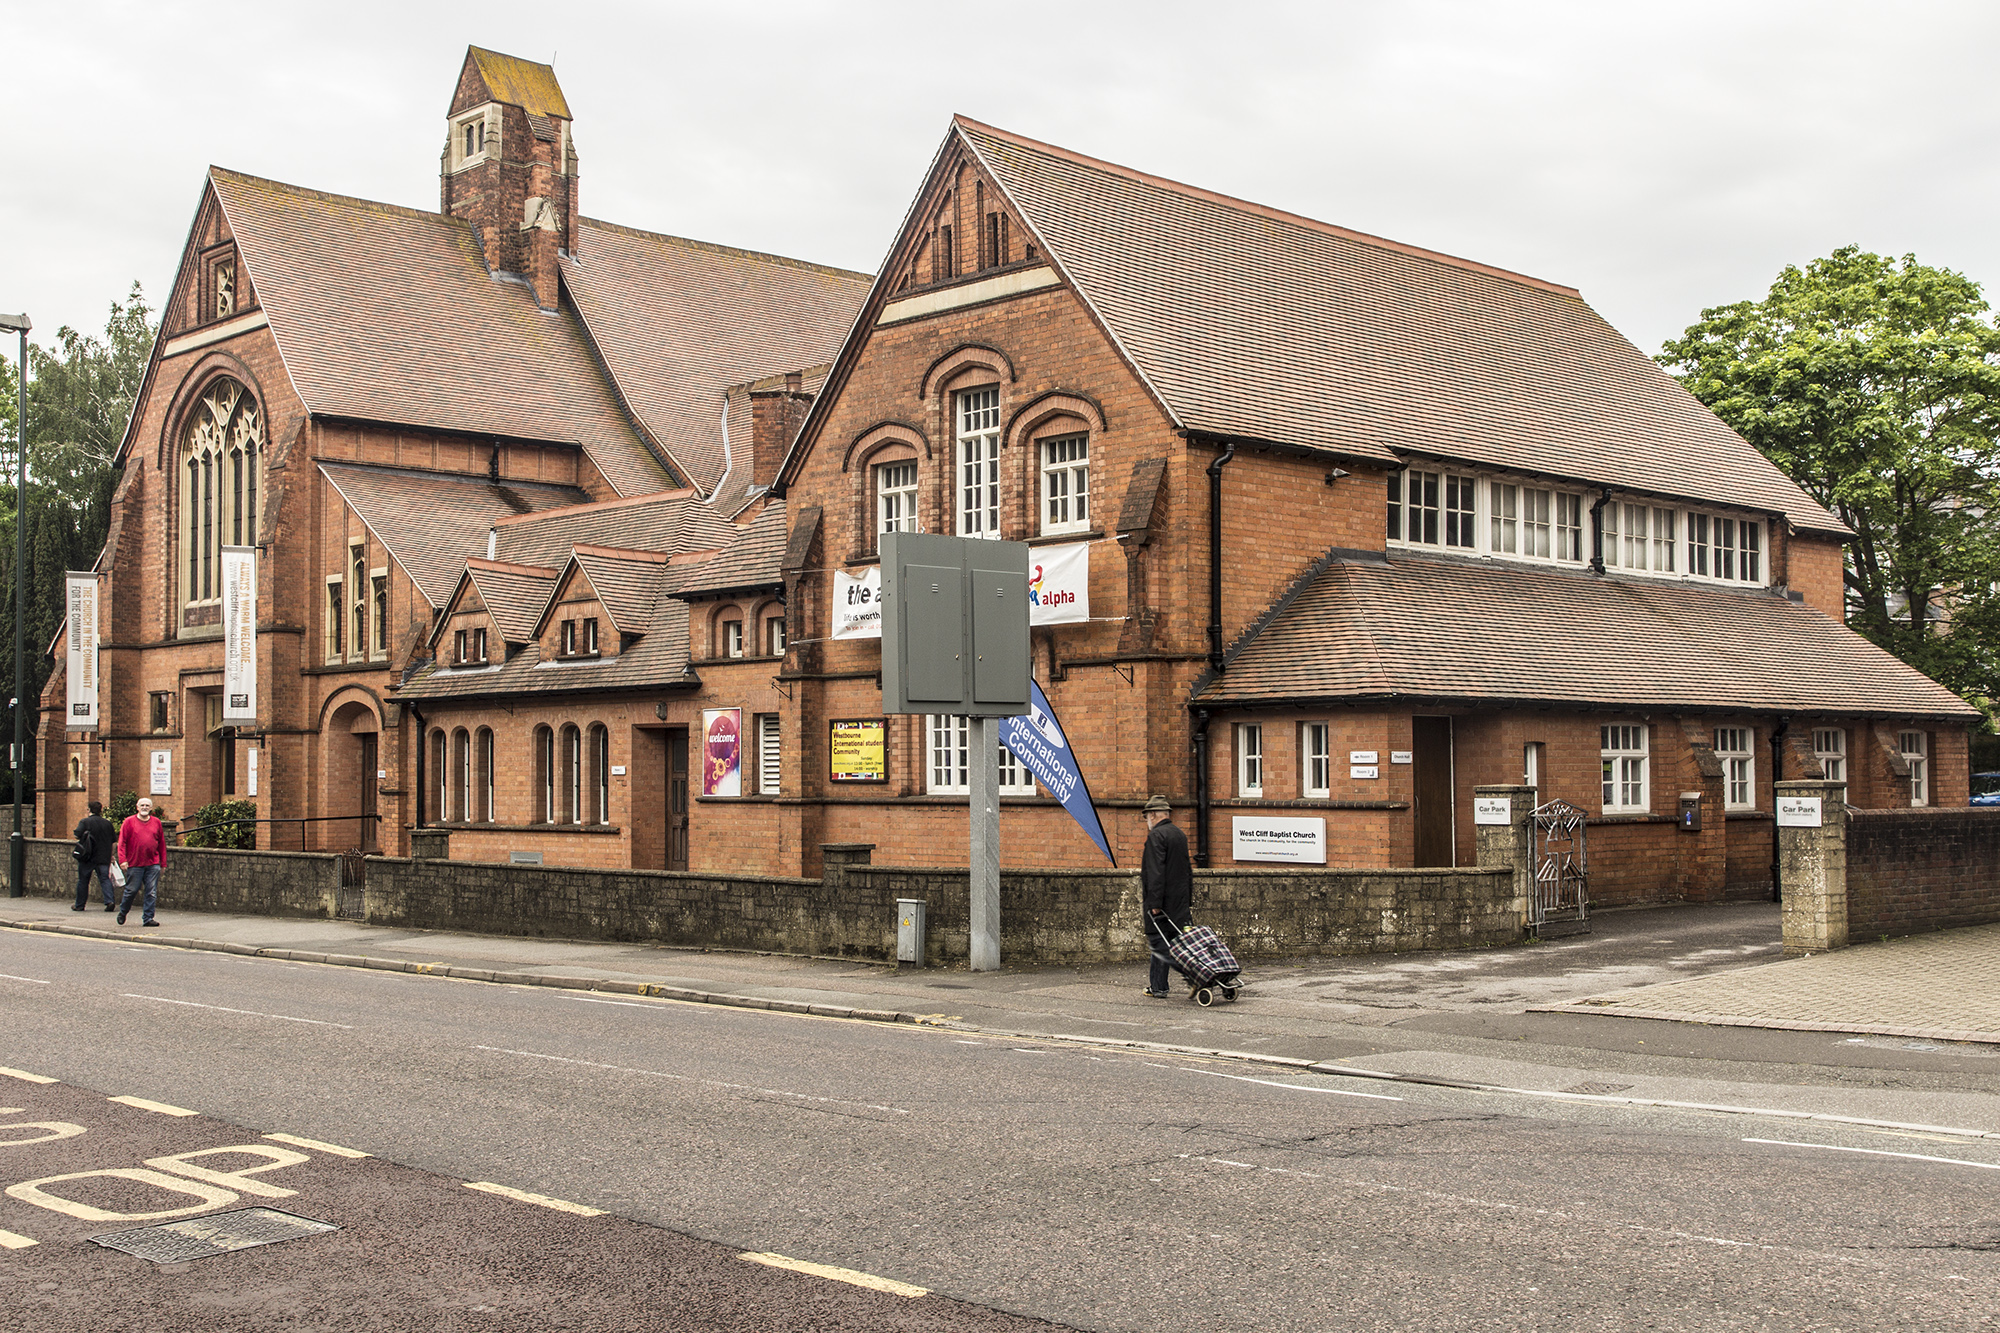 Churches in Westbourne - the Baptist Church